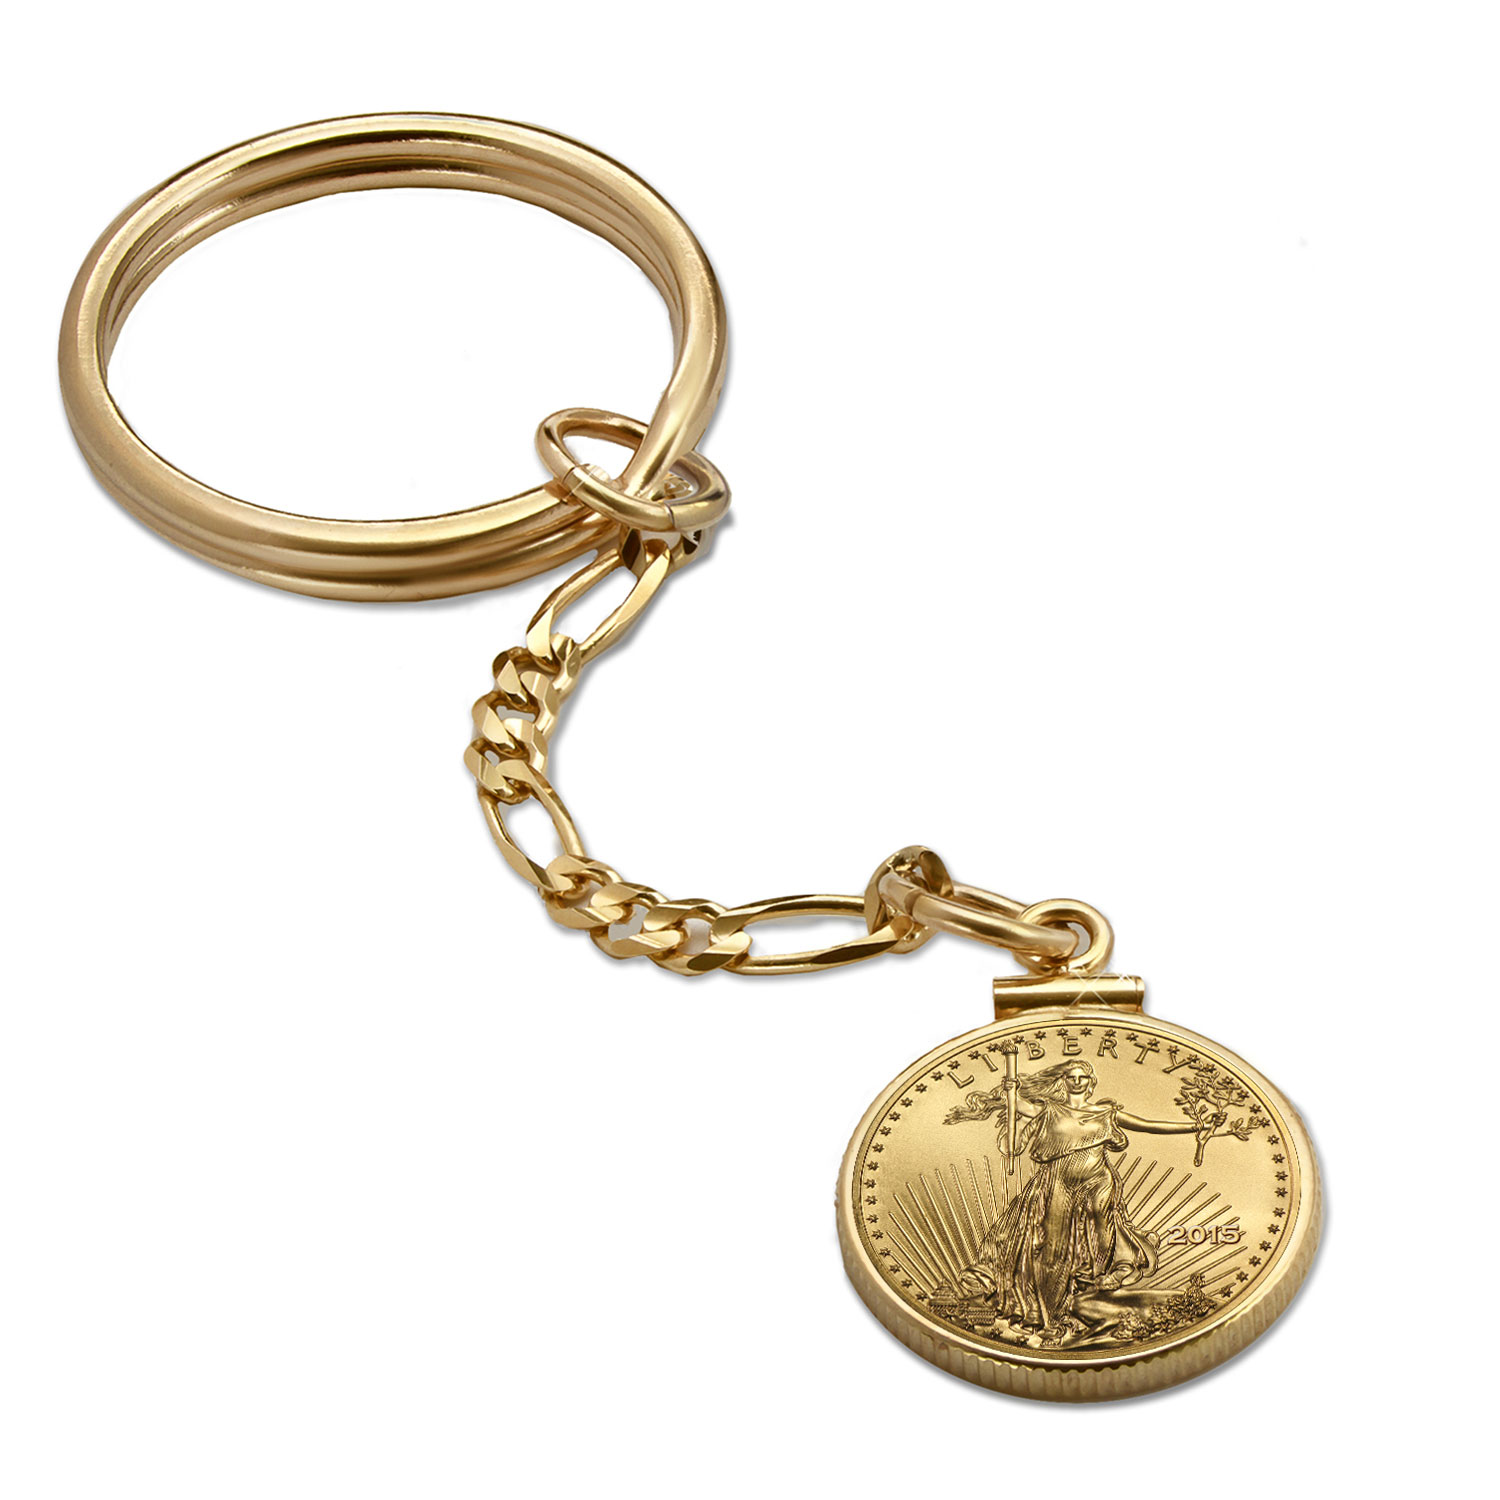 2015 1/10 oz Gold Eagle Key Ring